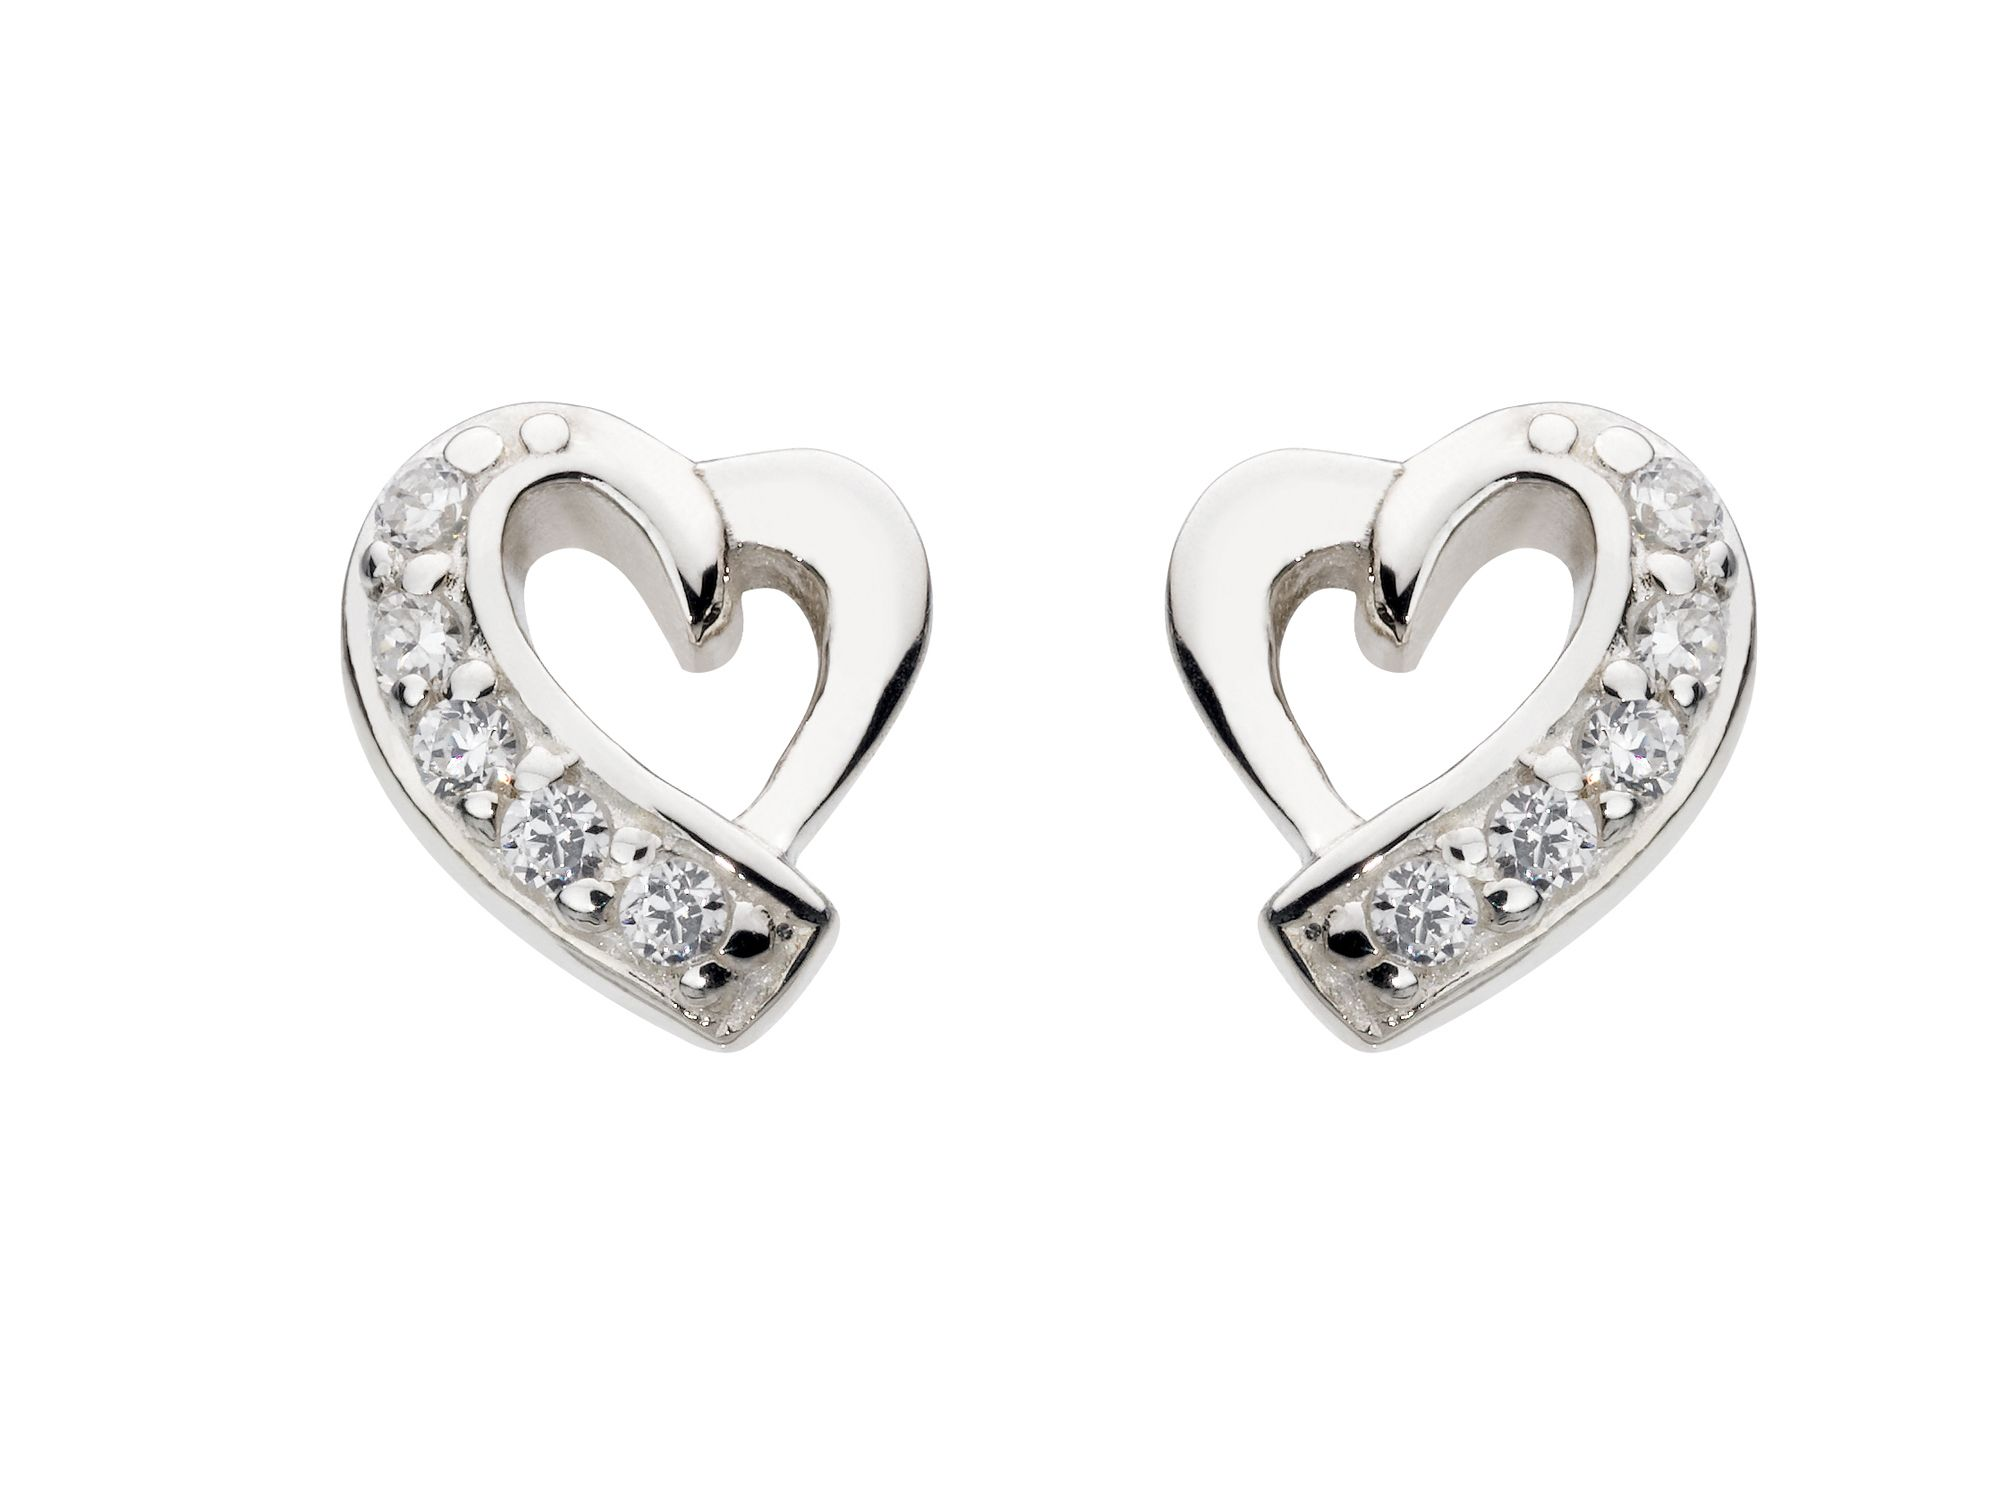 Small Heart Stud Earrings